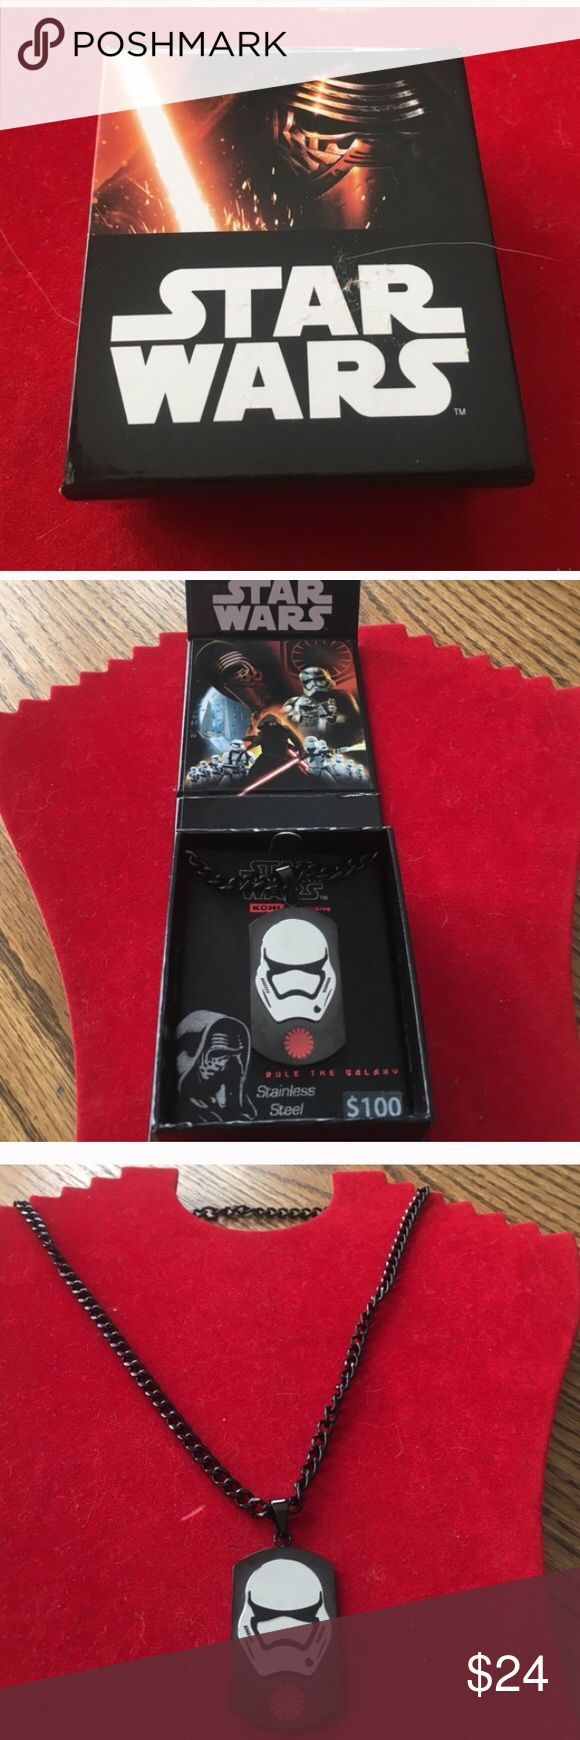 """Stainless steel Star Wars Necklace with free comic This necklace is brand new and comes with foldable box . Original price $100. Chain is black and 20"""" long. Excellent condition. Bonus free star wars comic. Disney Accessories Jewelry"""